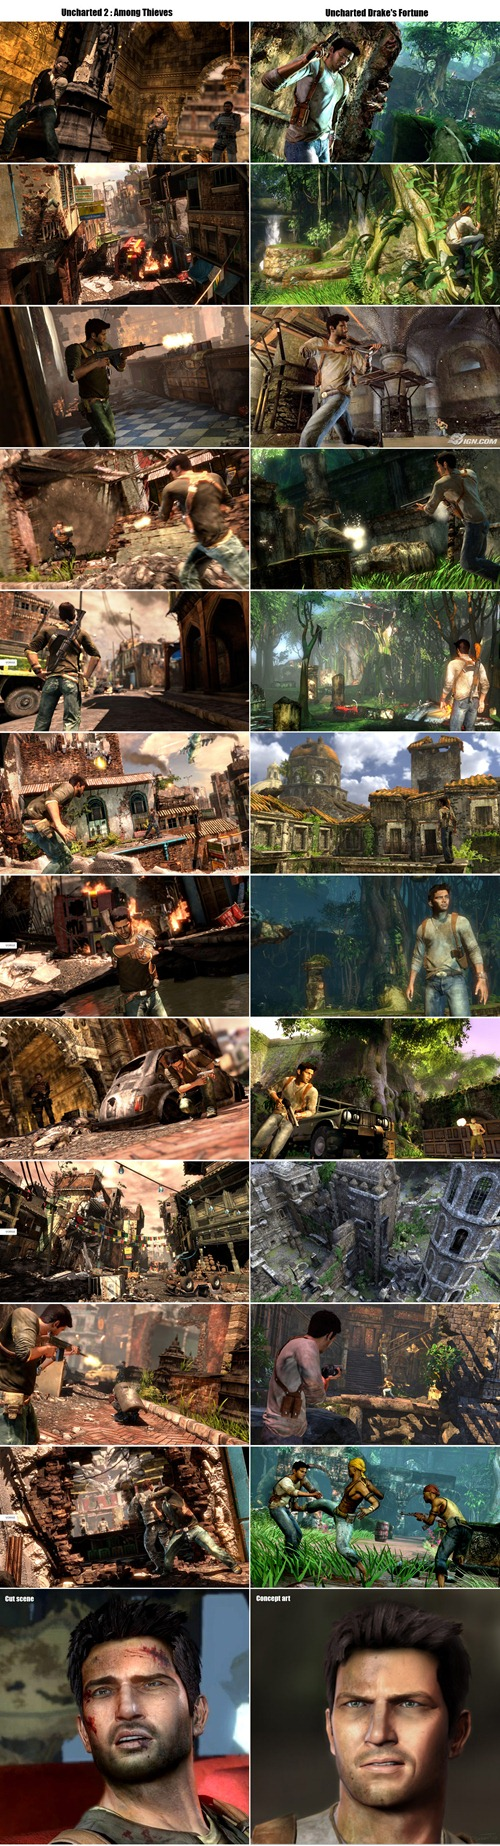 Uncharted1vs2